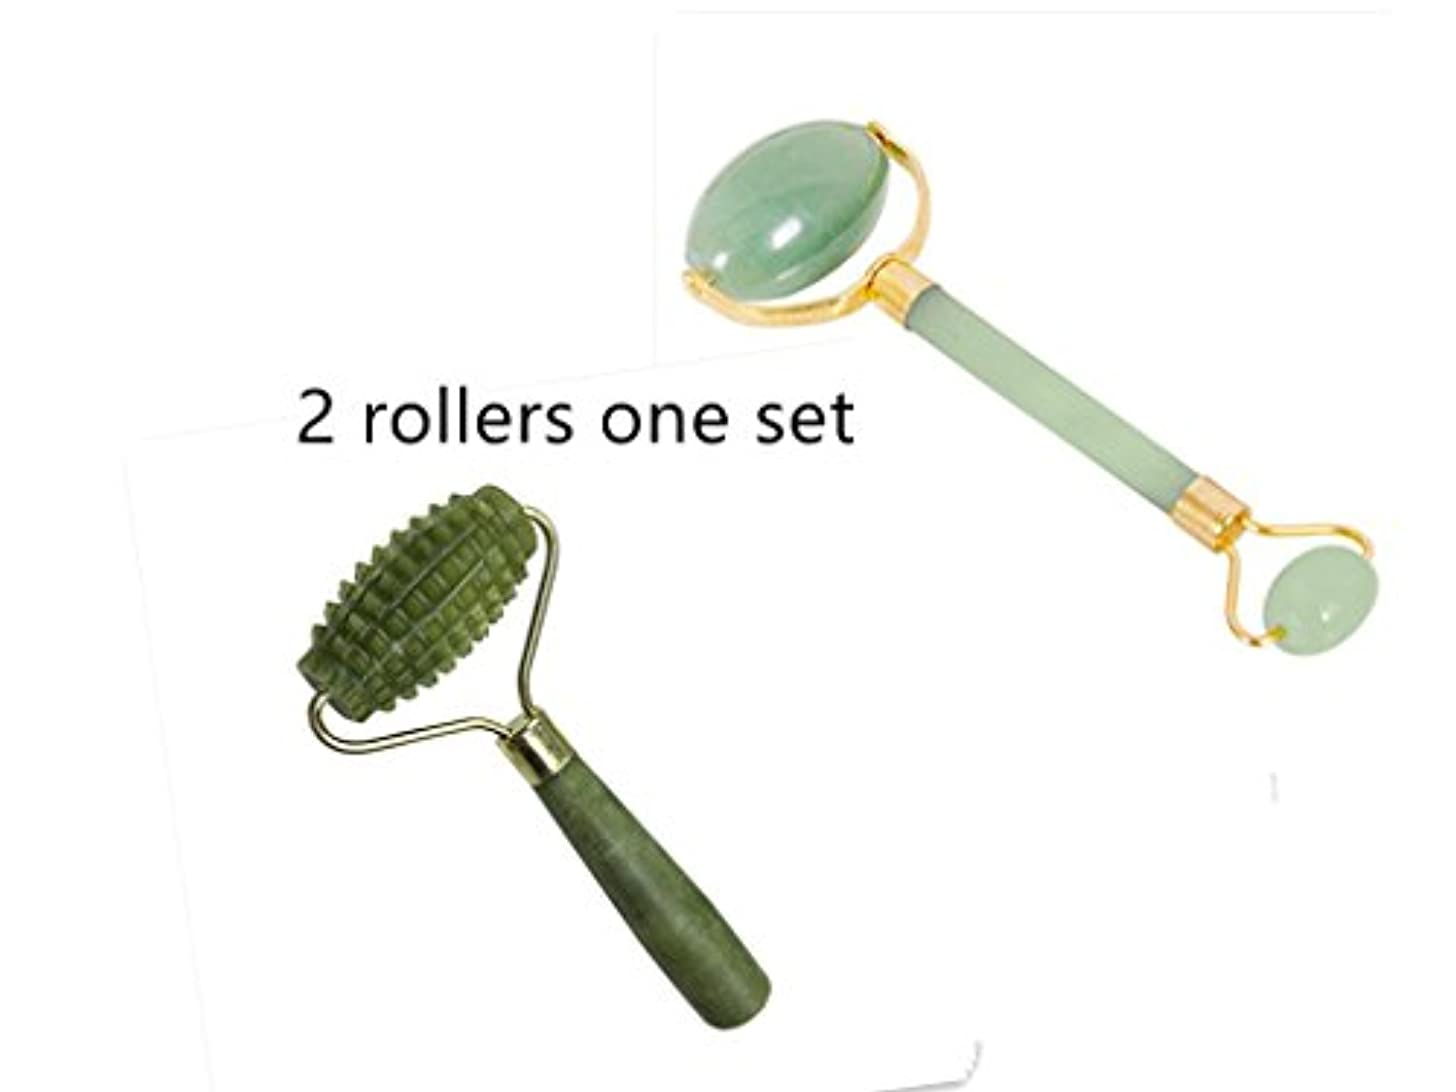 Echo & Kern 2点翡翠フェイスマッサジギザギザ付きでローラー 2pcs one set Double head Jade Roller and one single head Jade roller